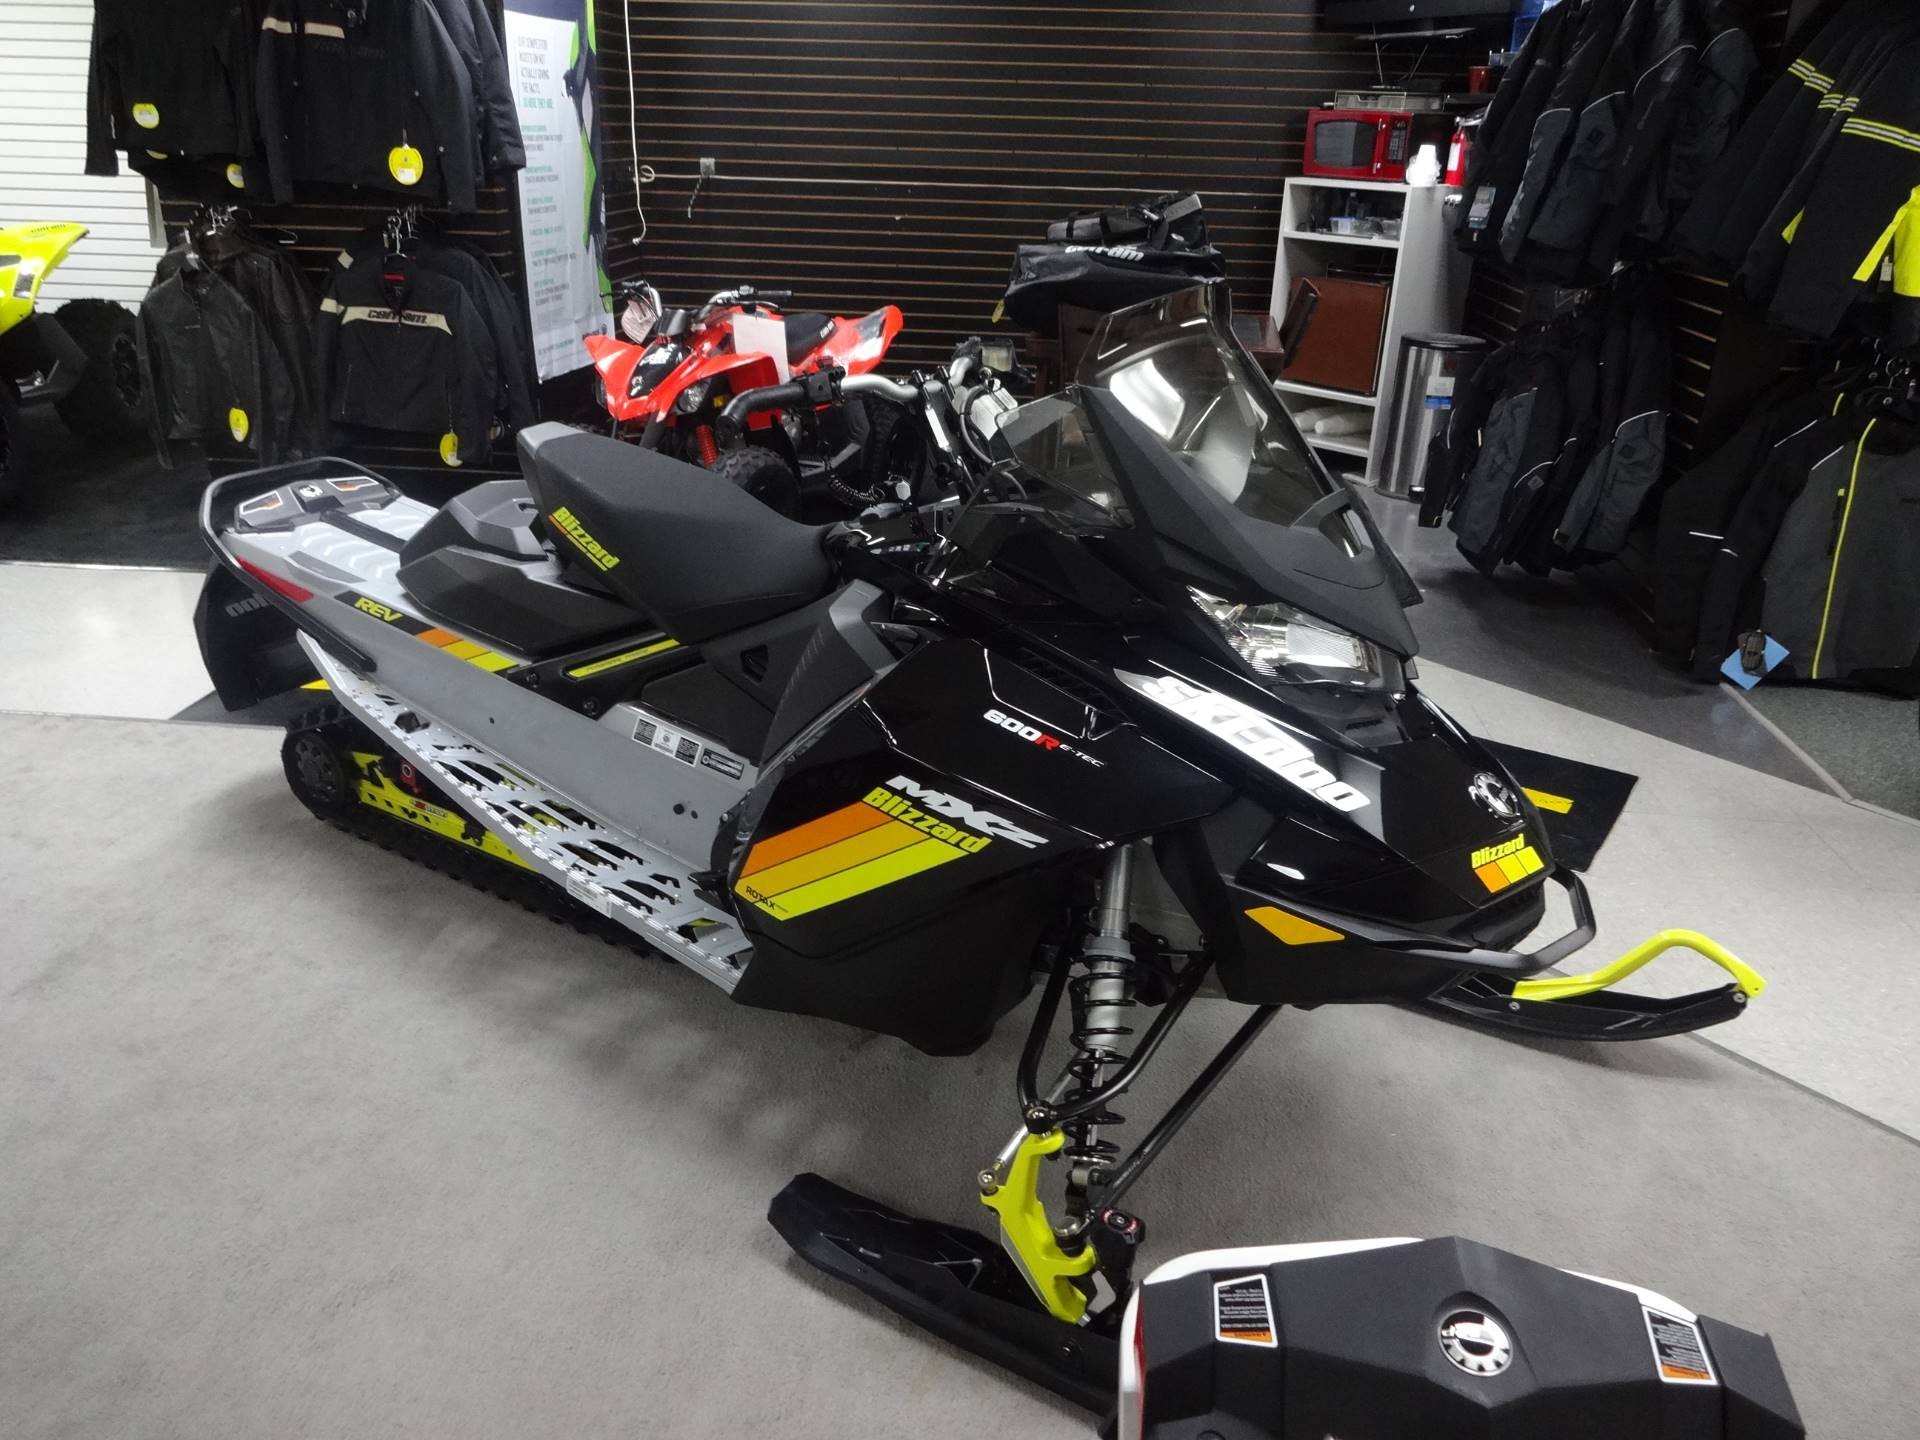 2019 Ski-Doo MXZ Blizzard 600R E-Tec in Zulu, Indiana - Photo 2